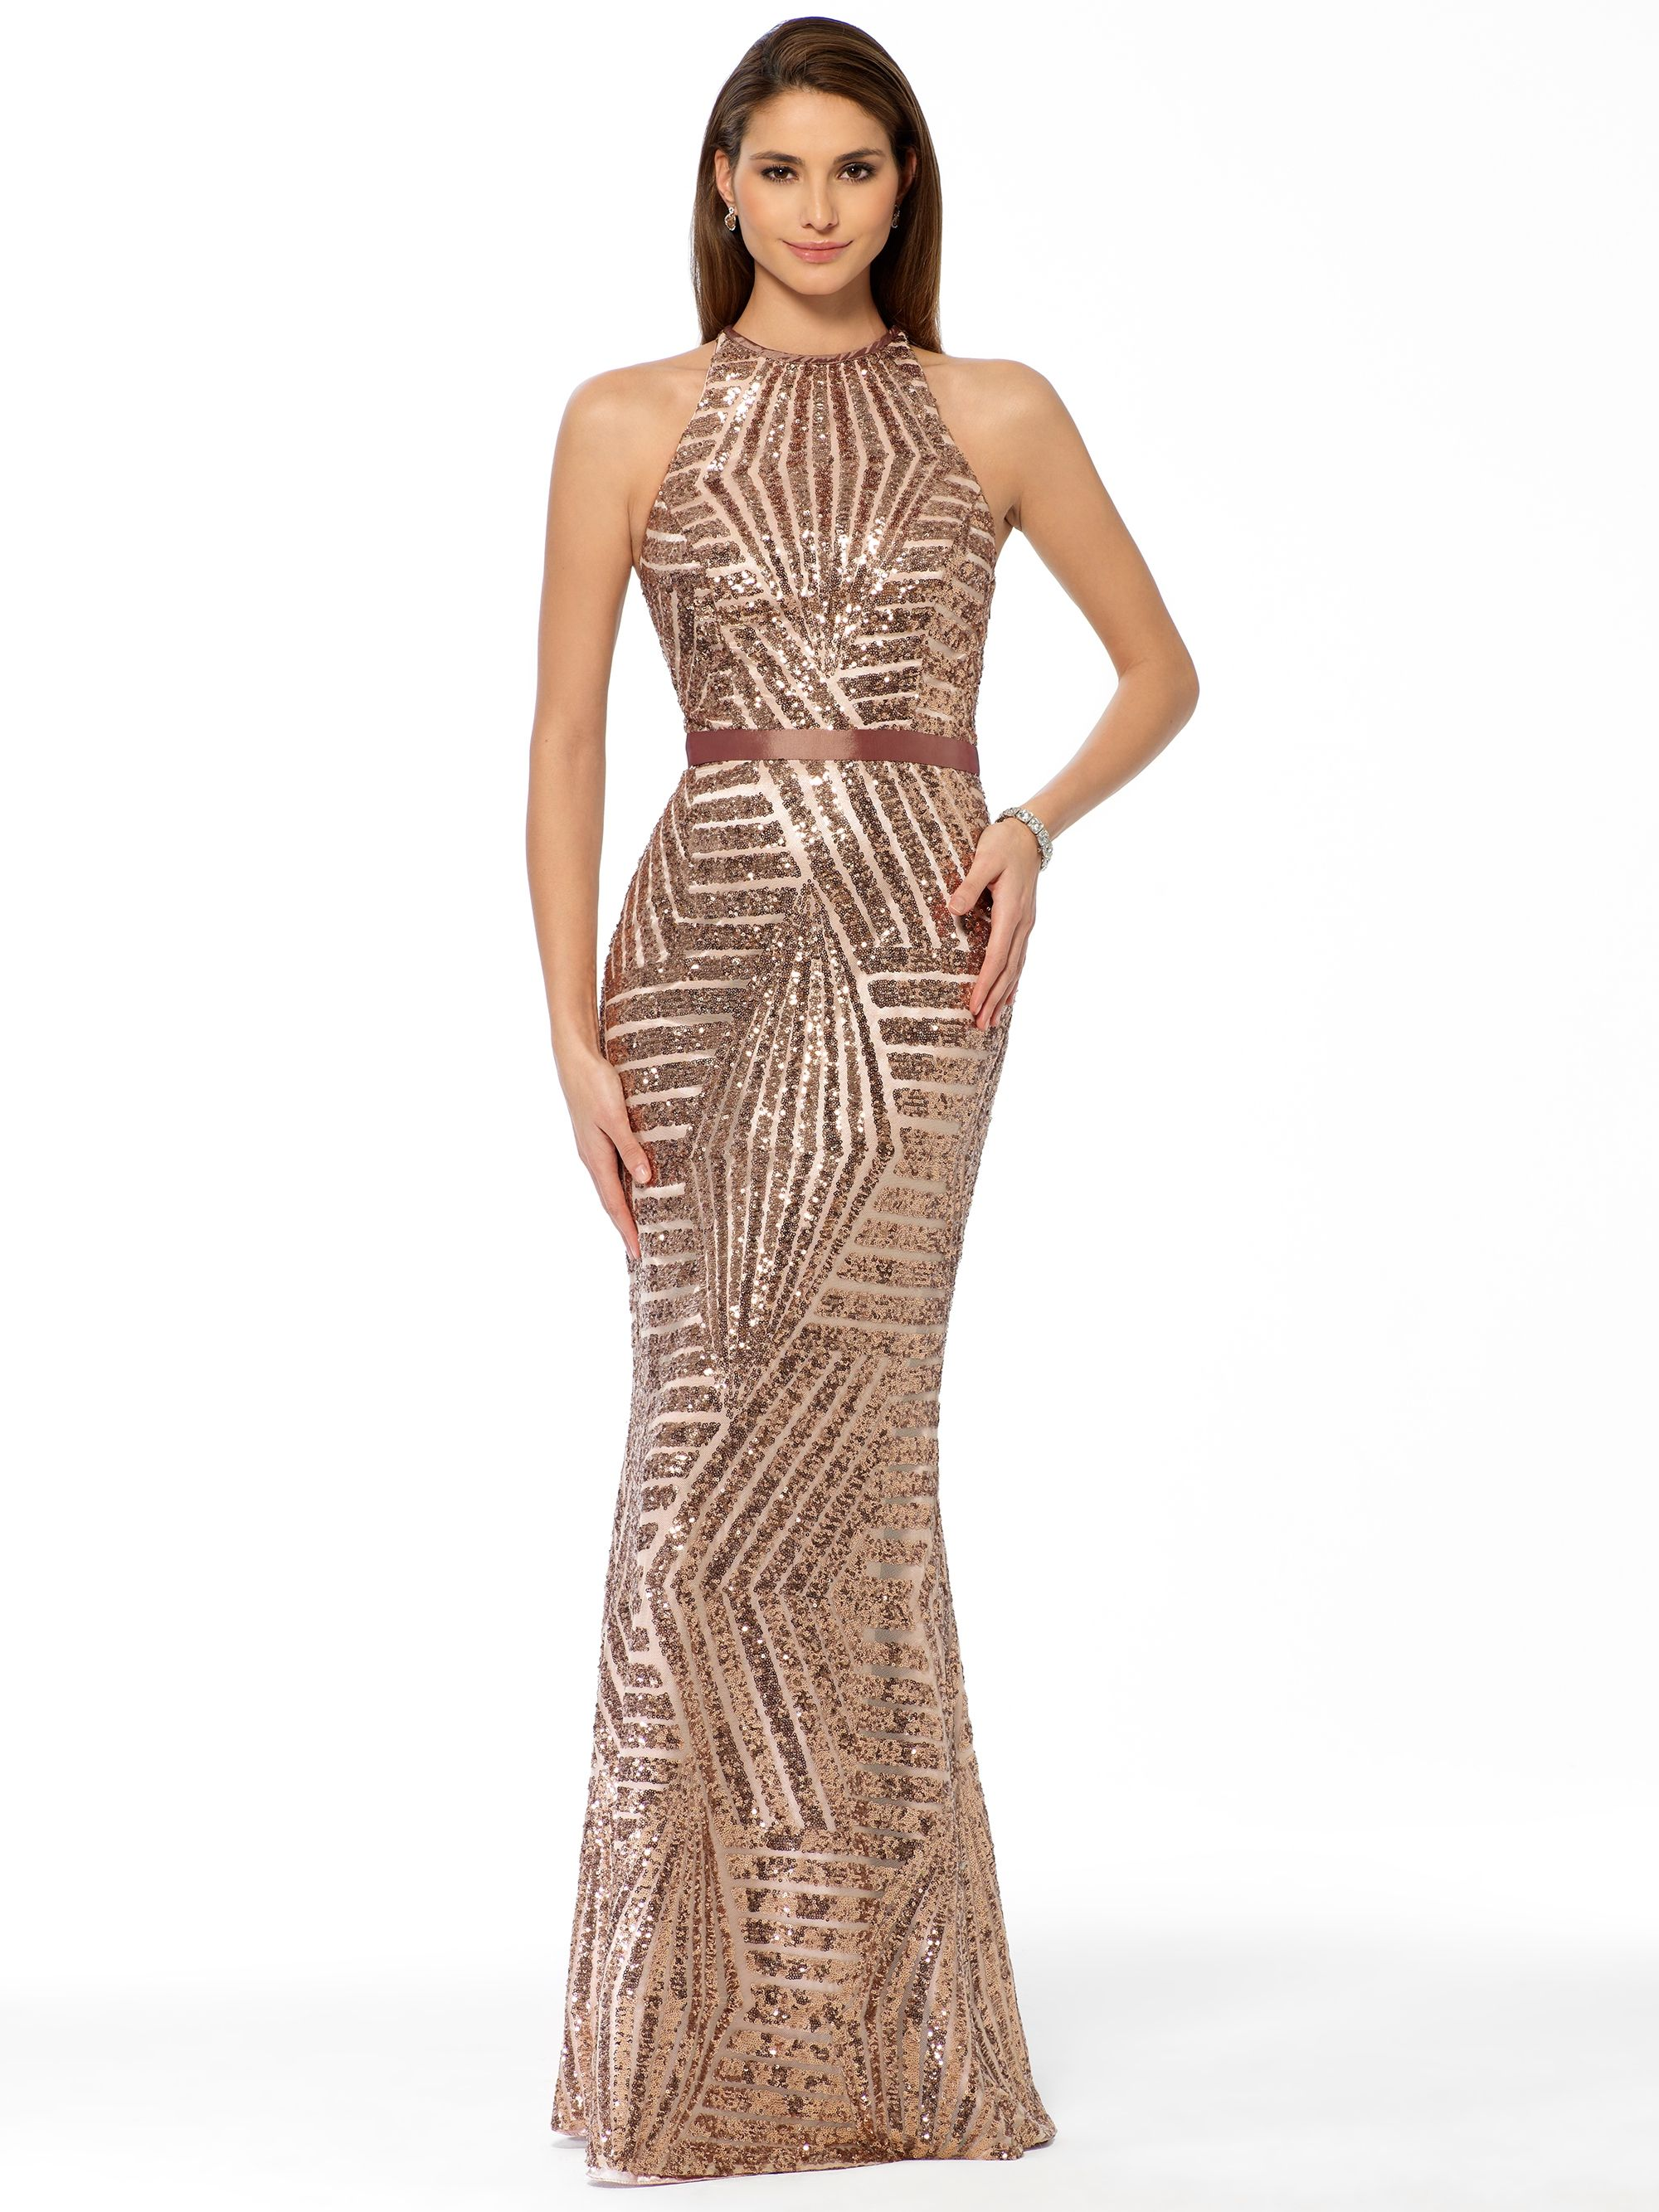 Bronze beauty. THE dress of the season | Gowns Galore | Pinterest ...